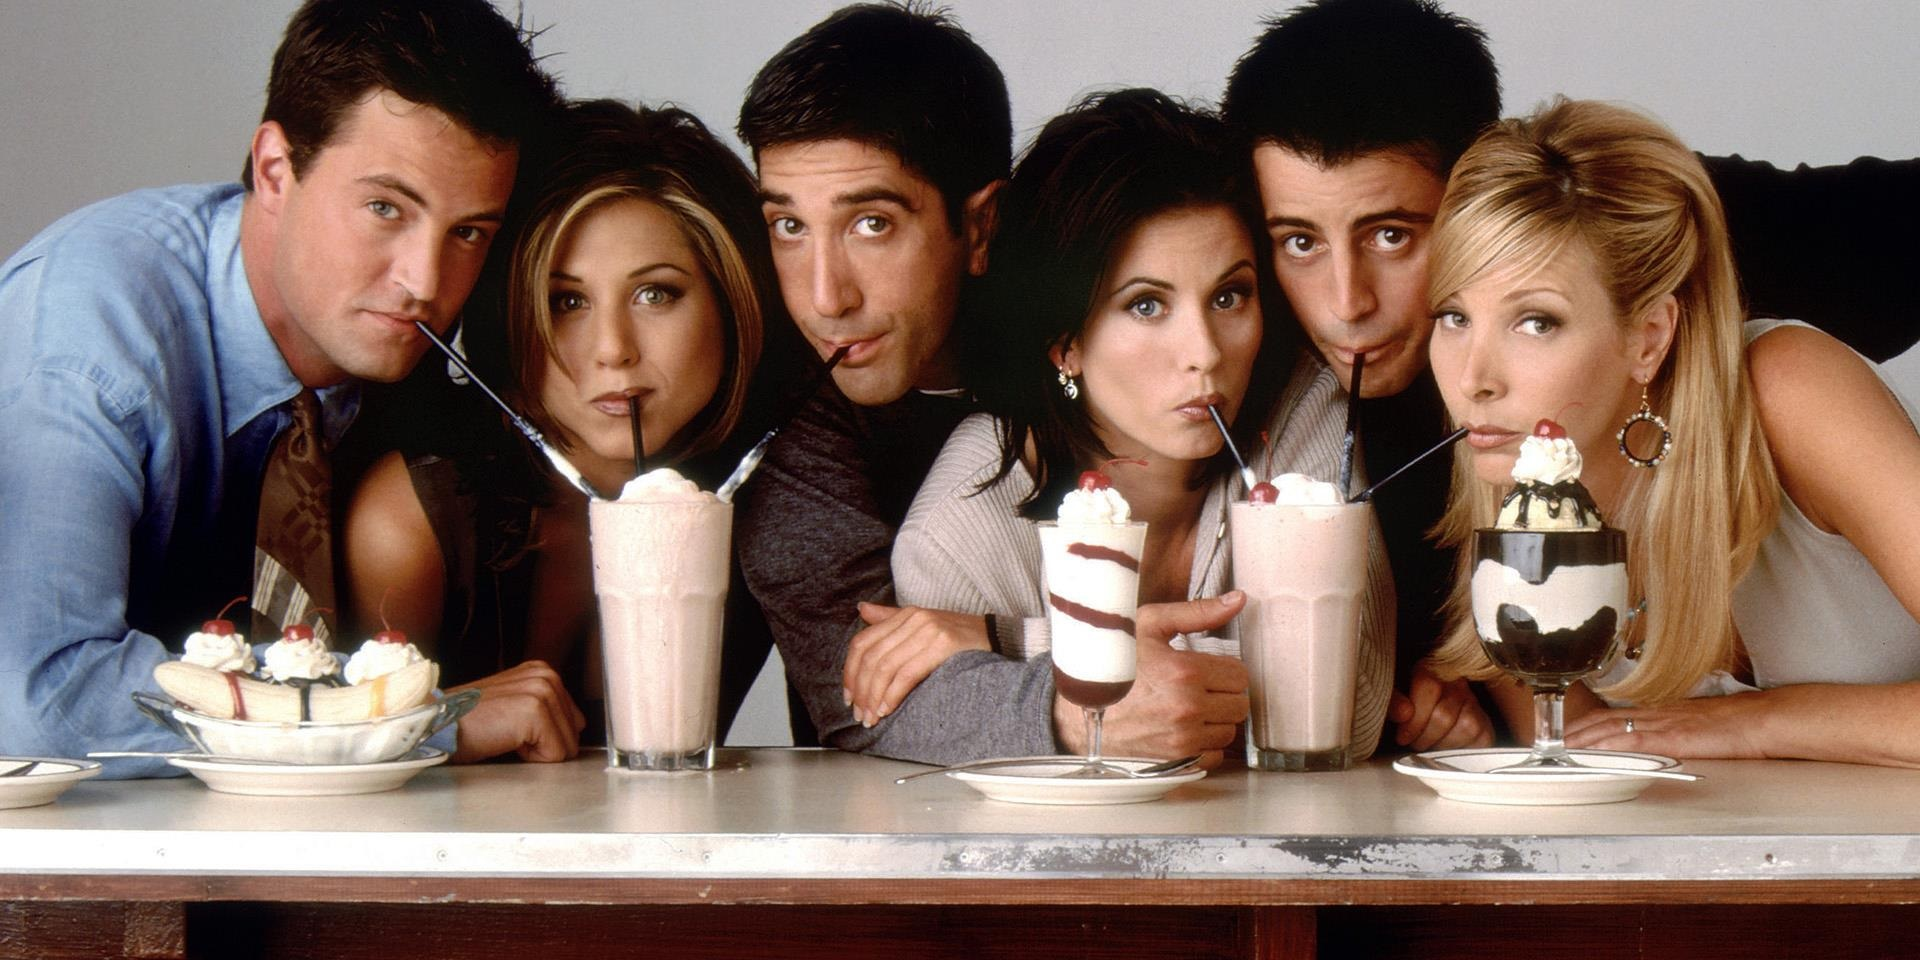 Who was the lead character in Friends? The Data Science